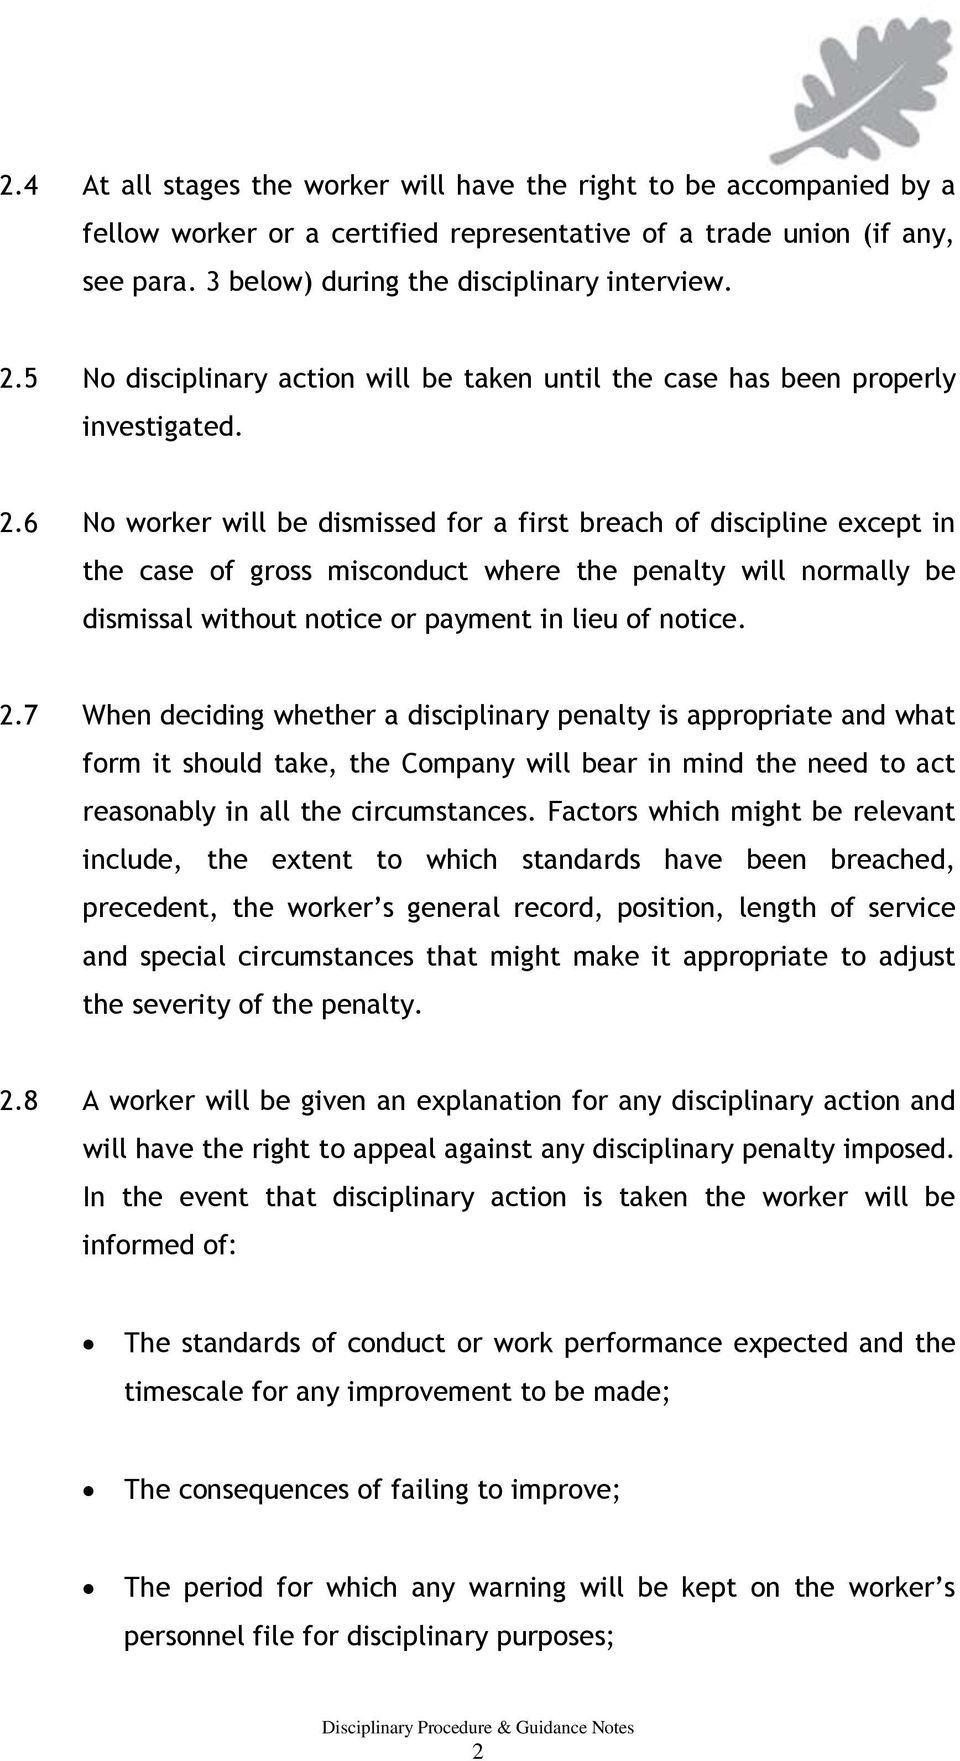 6 No worker will be dismissed for a first breach of discipline except in the case of gross misconduct where the penalty will normally be dismissal without notice or payment in lieu of notice. 2.